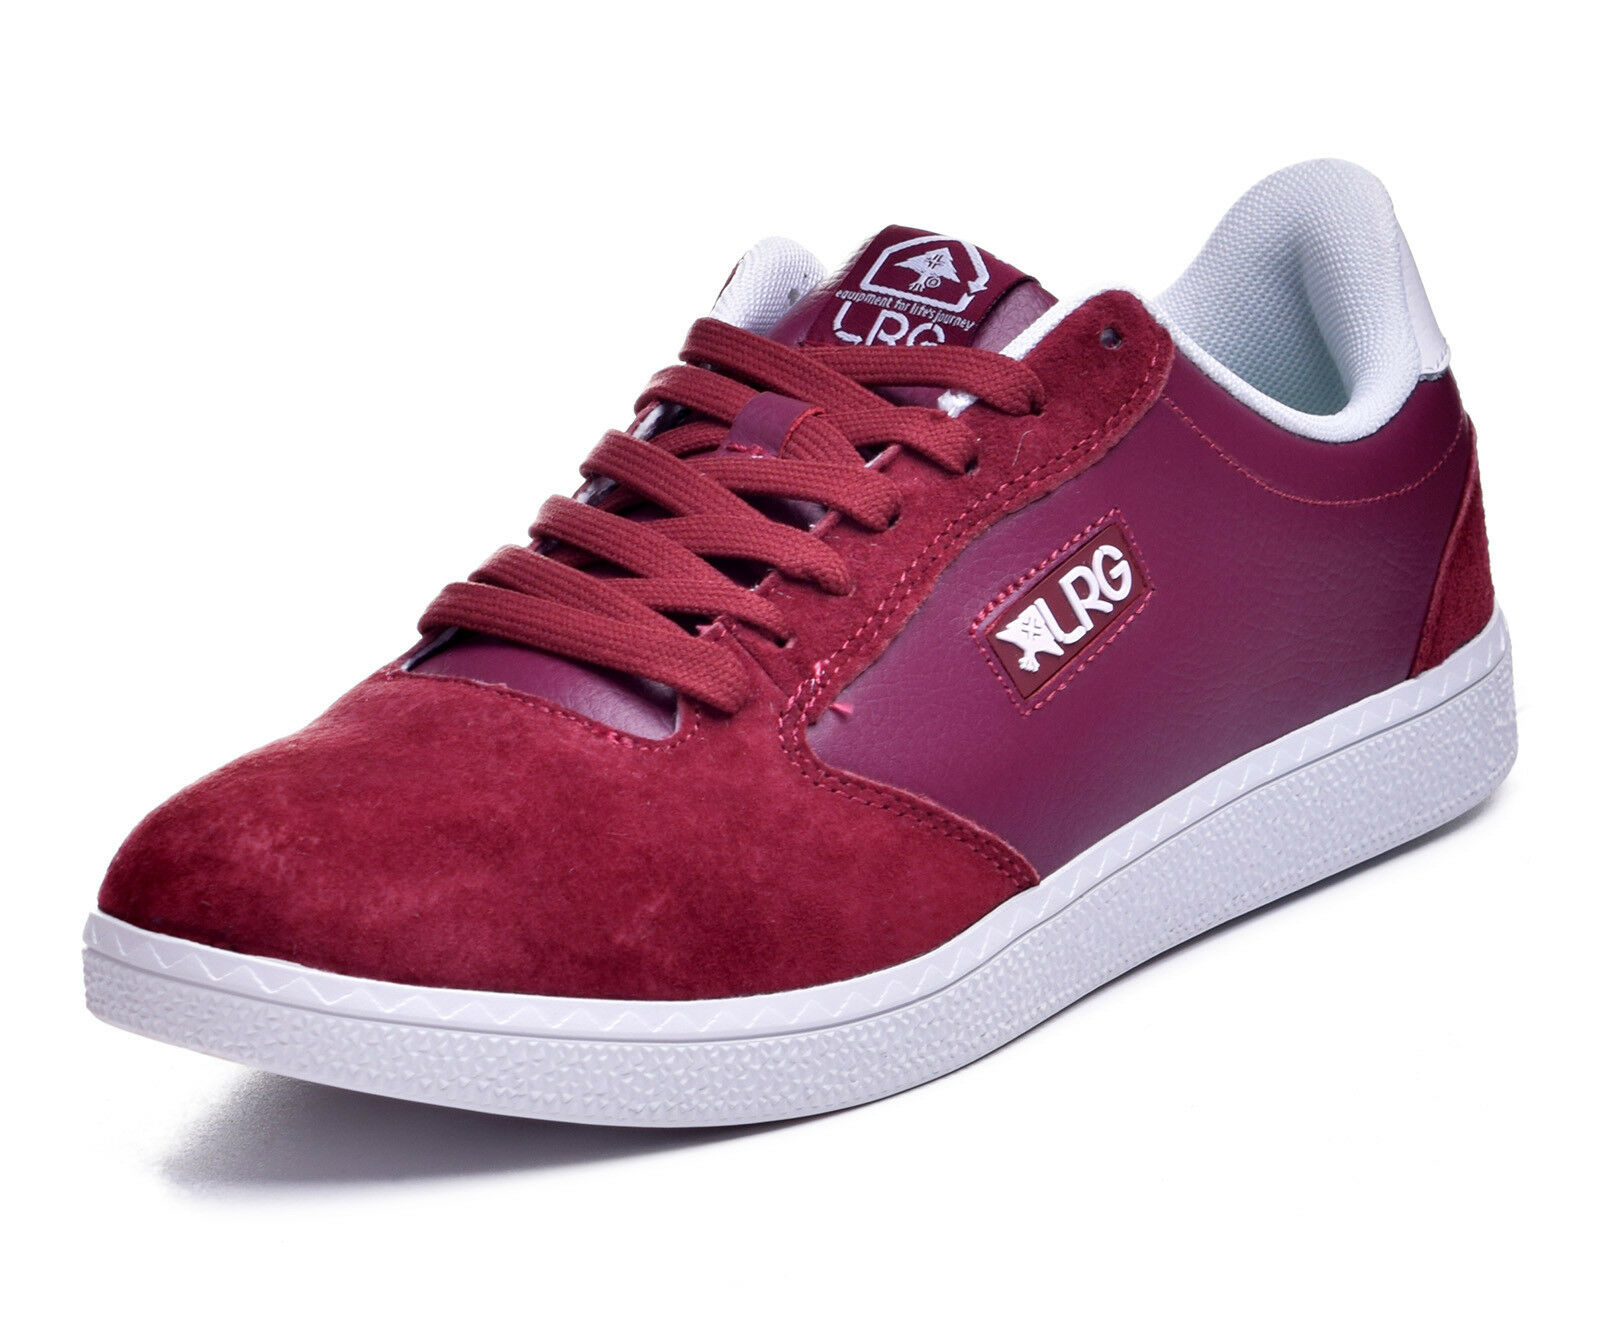 LRG Lifted Research Group Men's Tupelo Burgundy Red Suede Low Top shoes 11